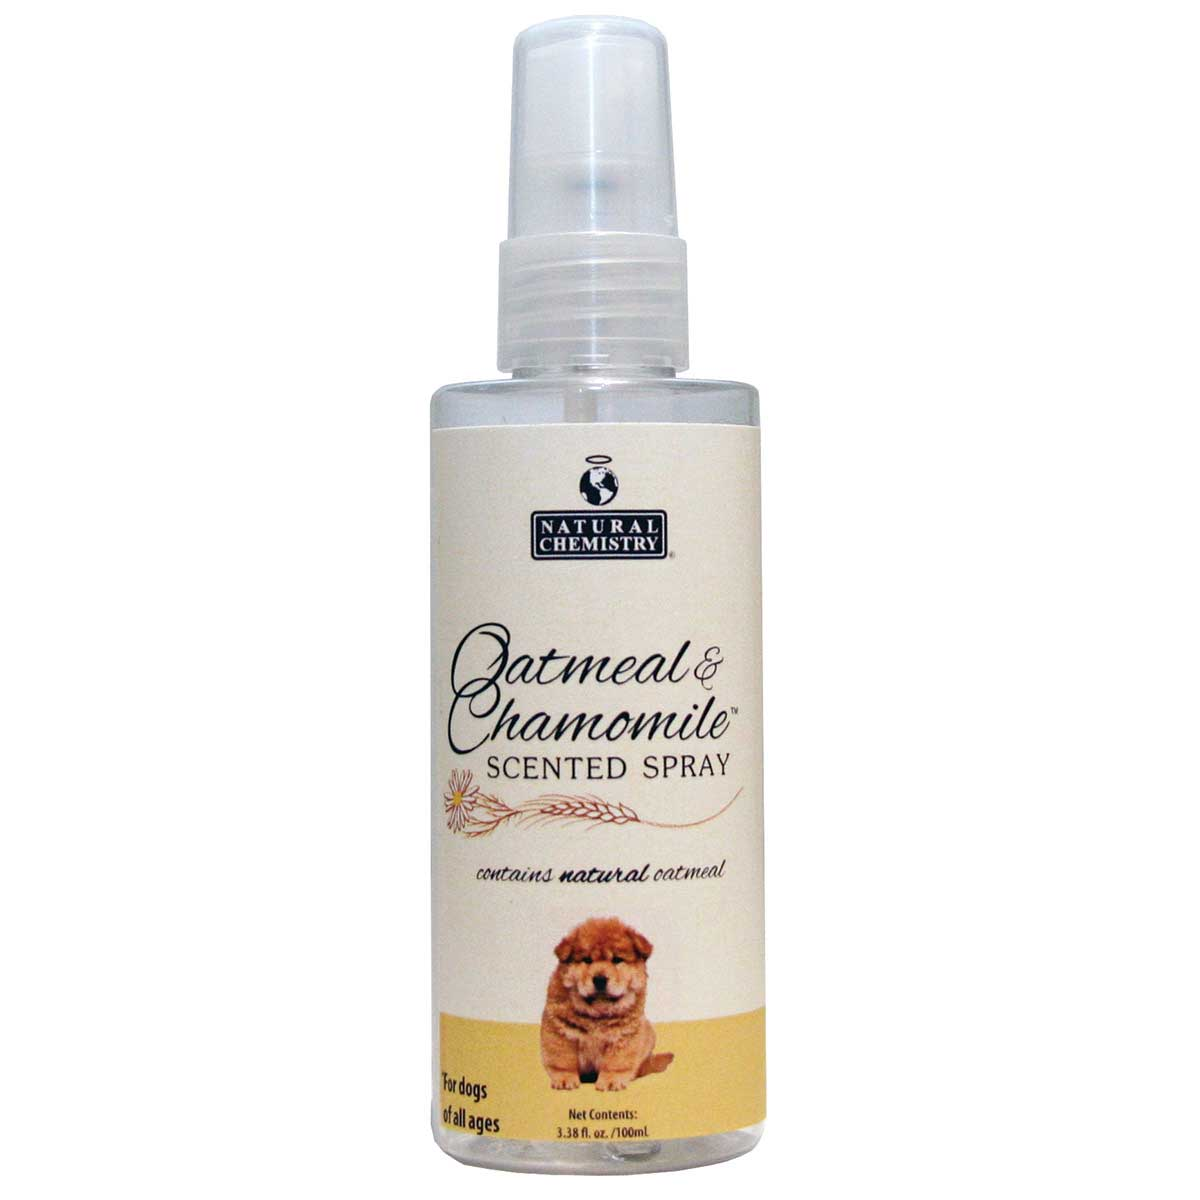 Natural Chemistry Oatmeal & Chamomile Spritzer Finishing Spray for Dogs of all Ages - 3.38 oz